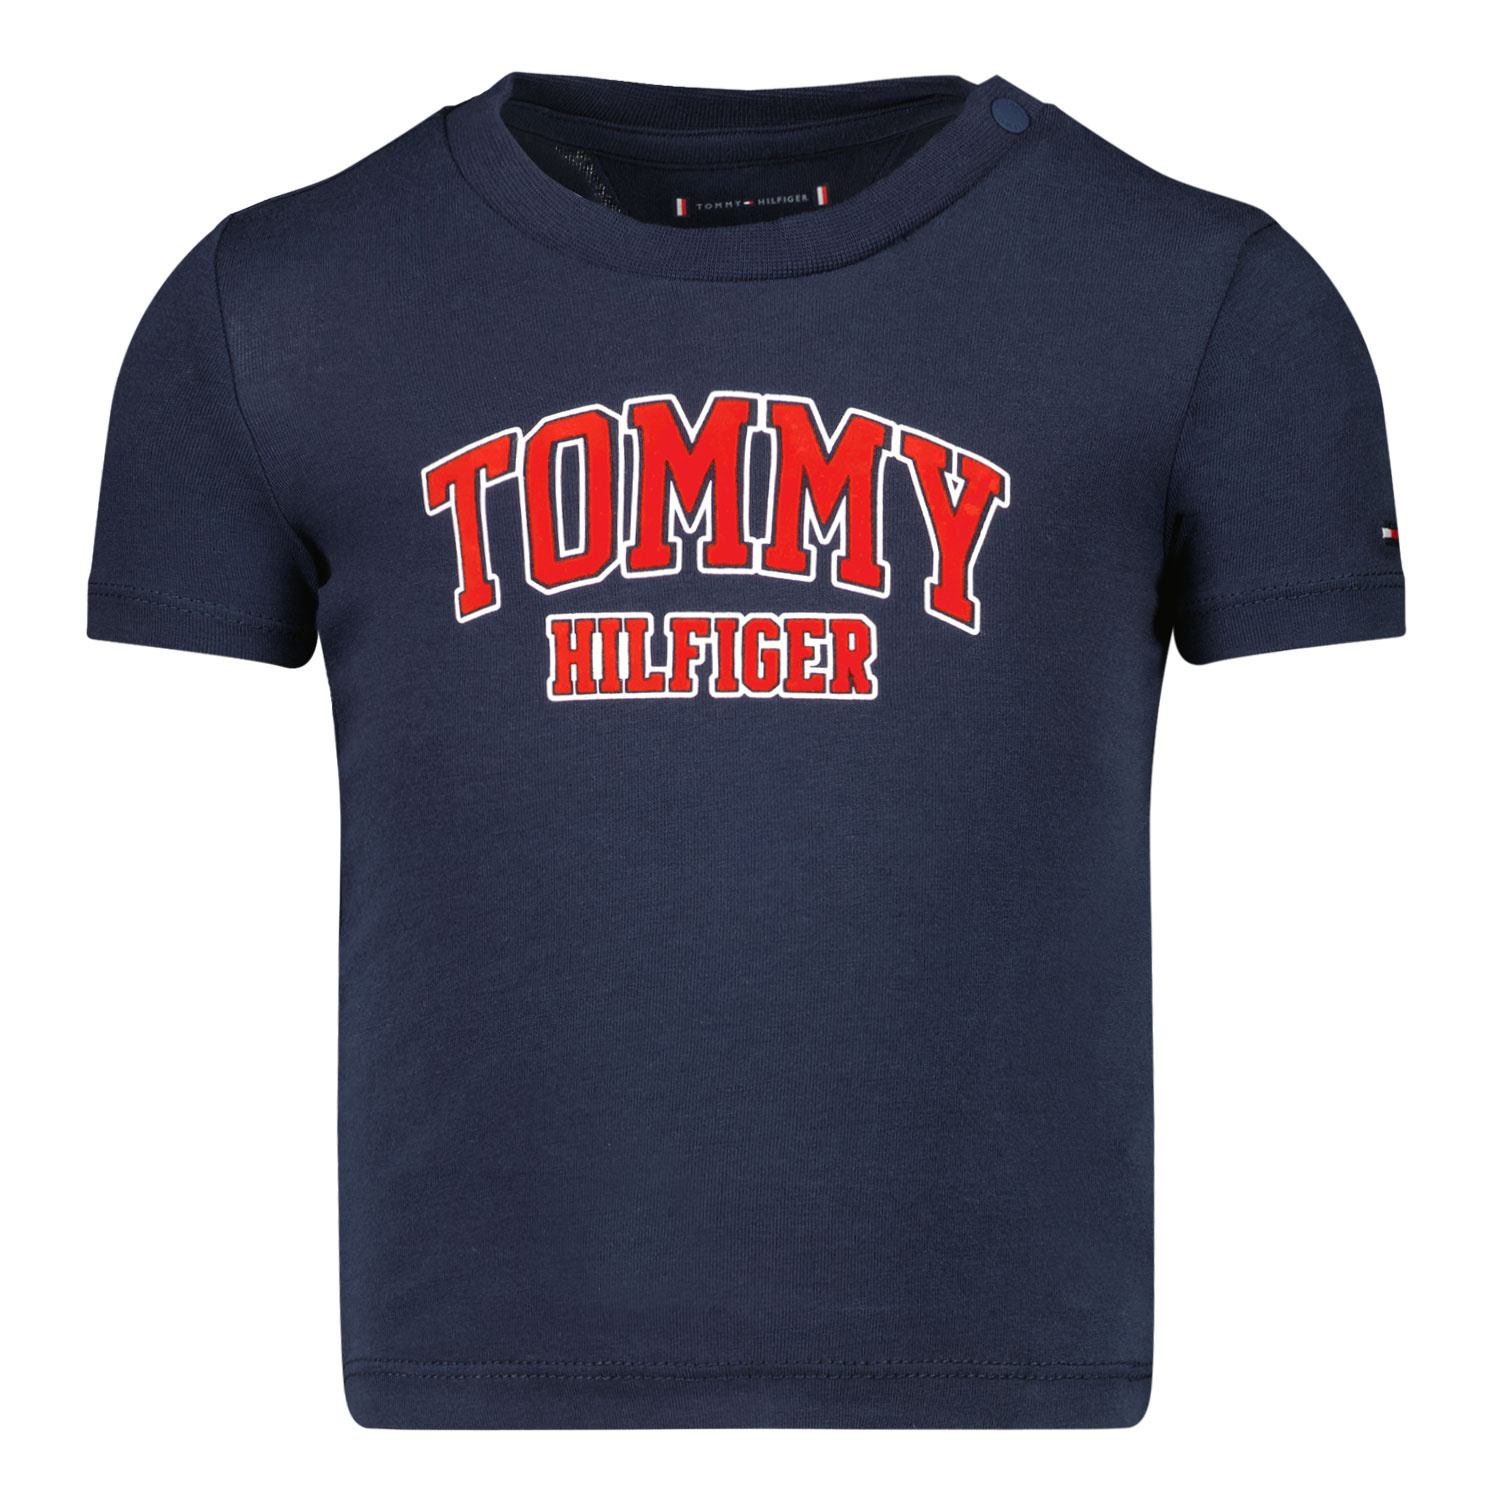 Afbeelding van Tommy Hilfiger KN0KN01272 baby t-shirt navy